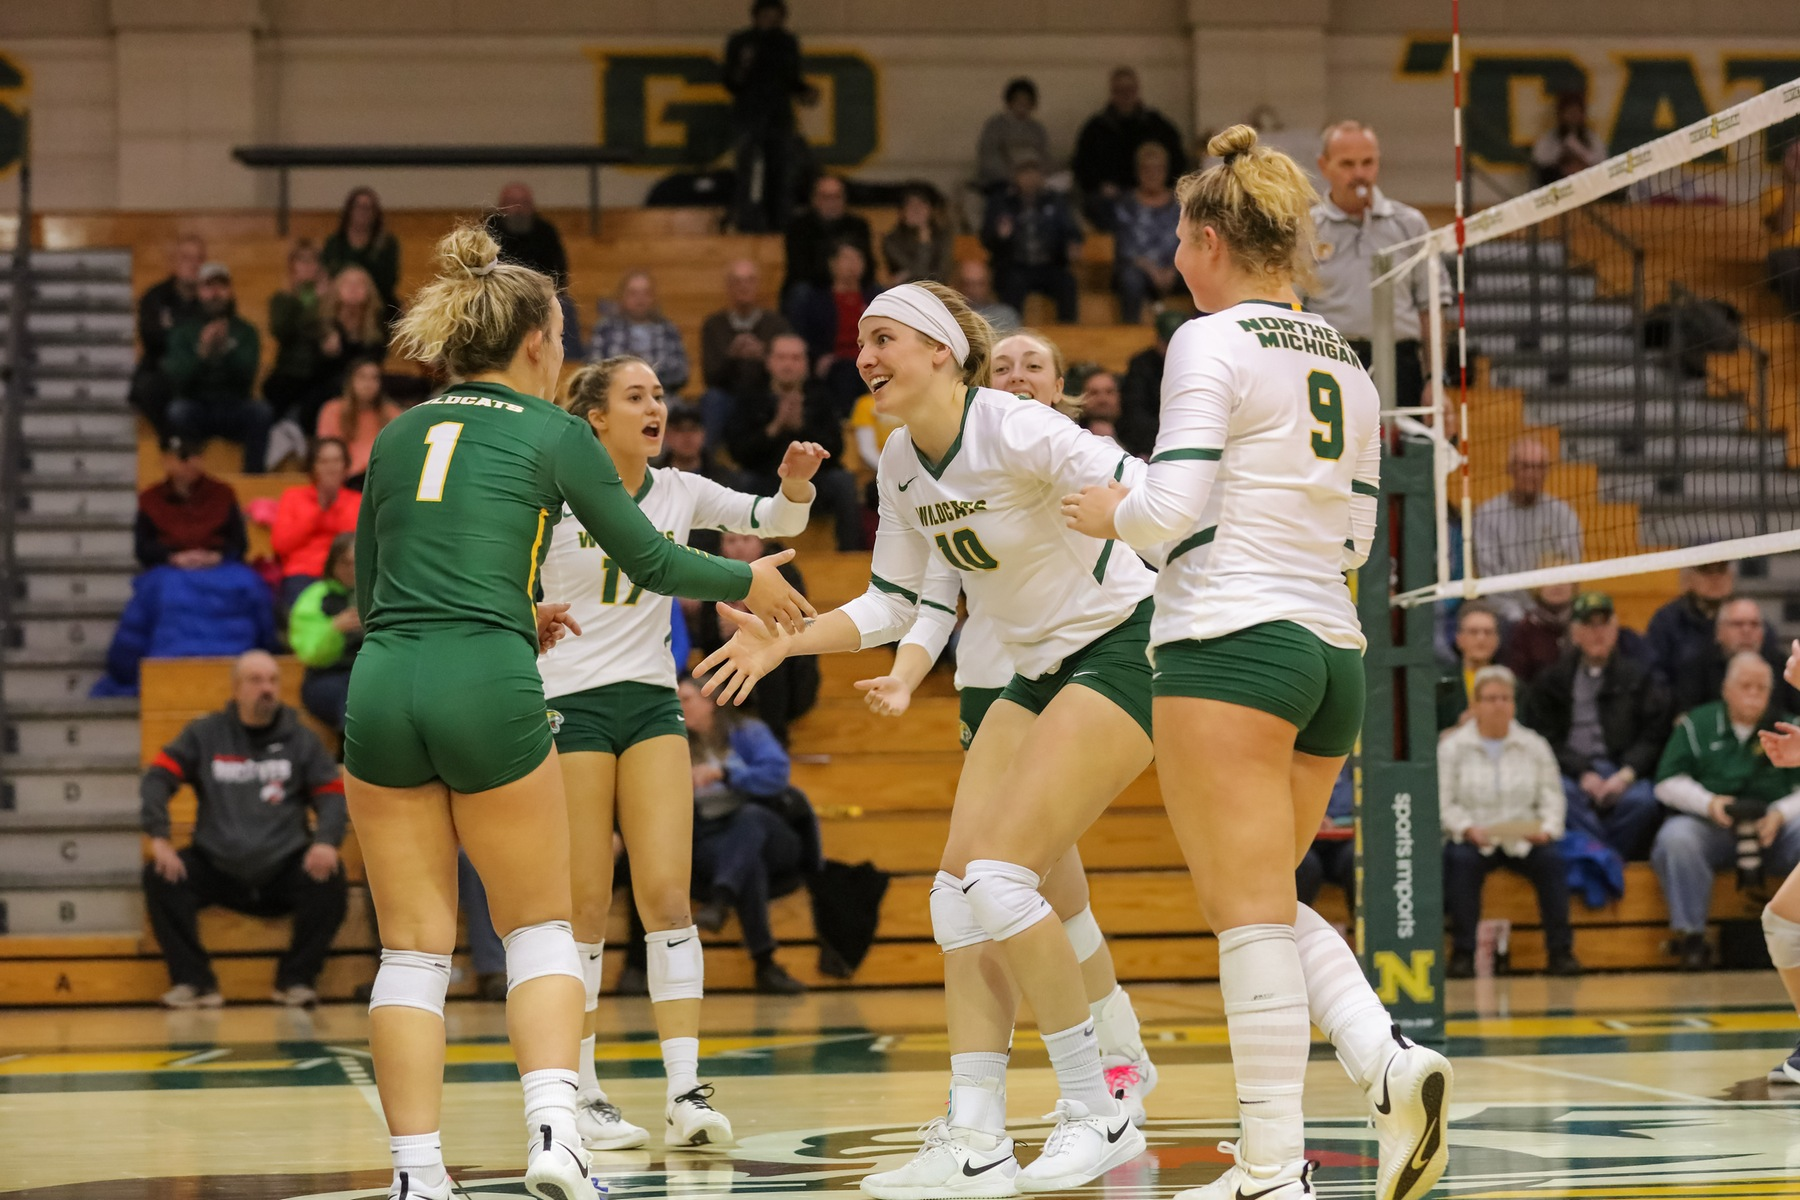 NMU Volleyball Sweeps LSSU In Regular Season Finale